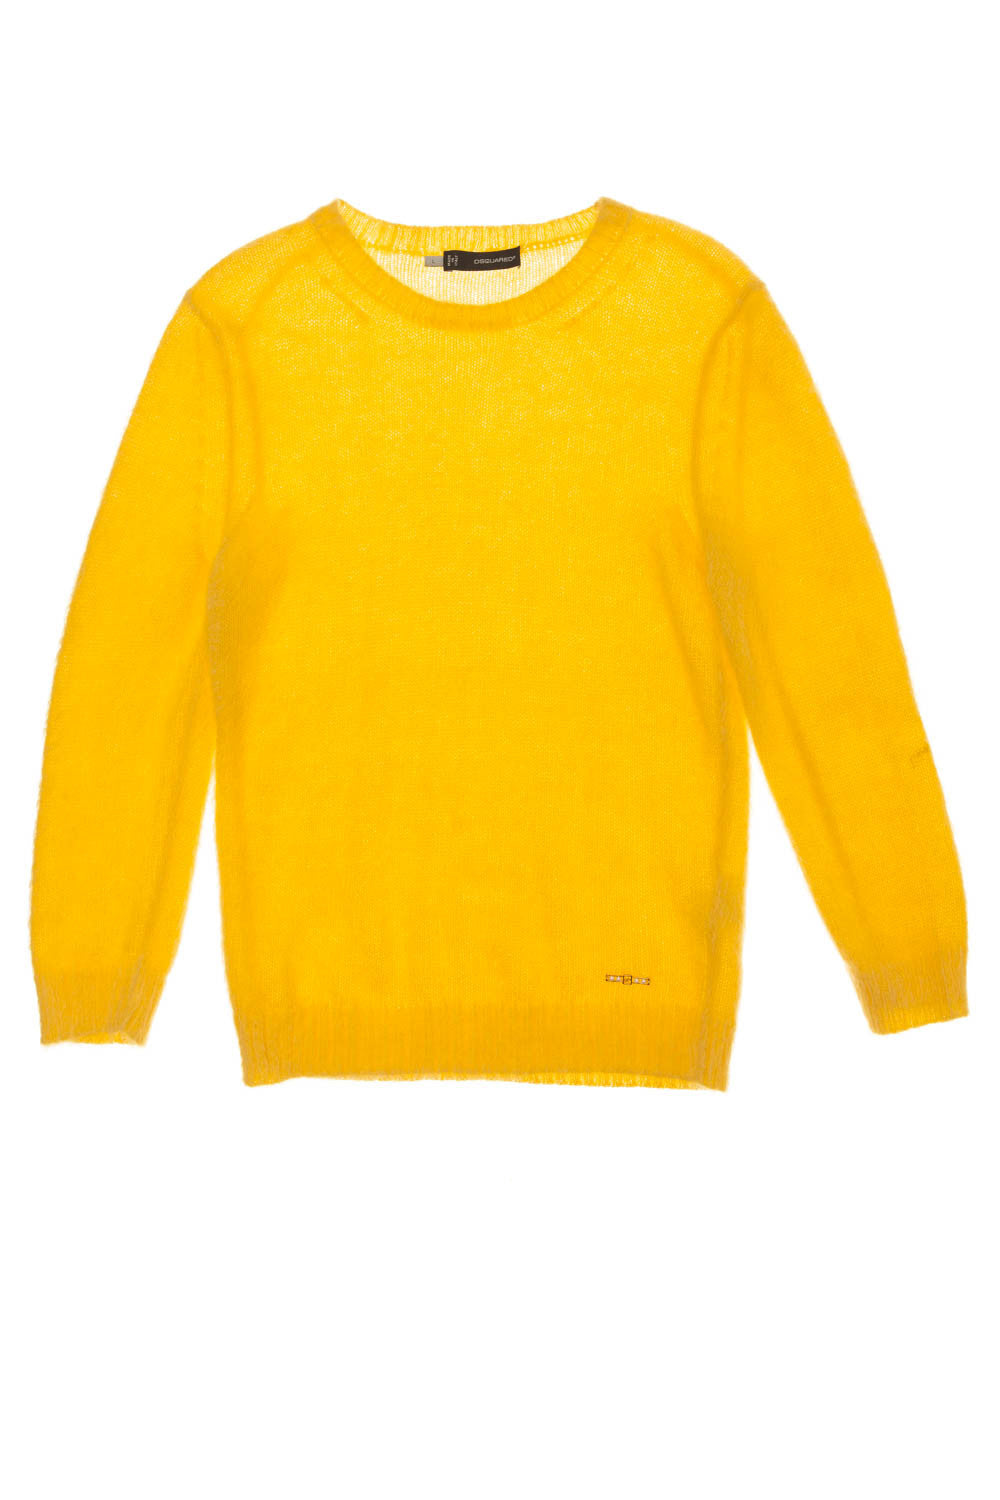 Dsquared2 - As Seen on the 2012 Fall Runway Collection, look 4 - Yellow Sweater - L